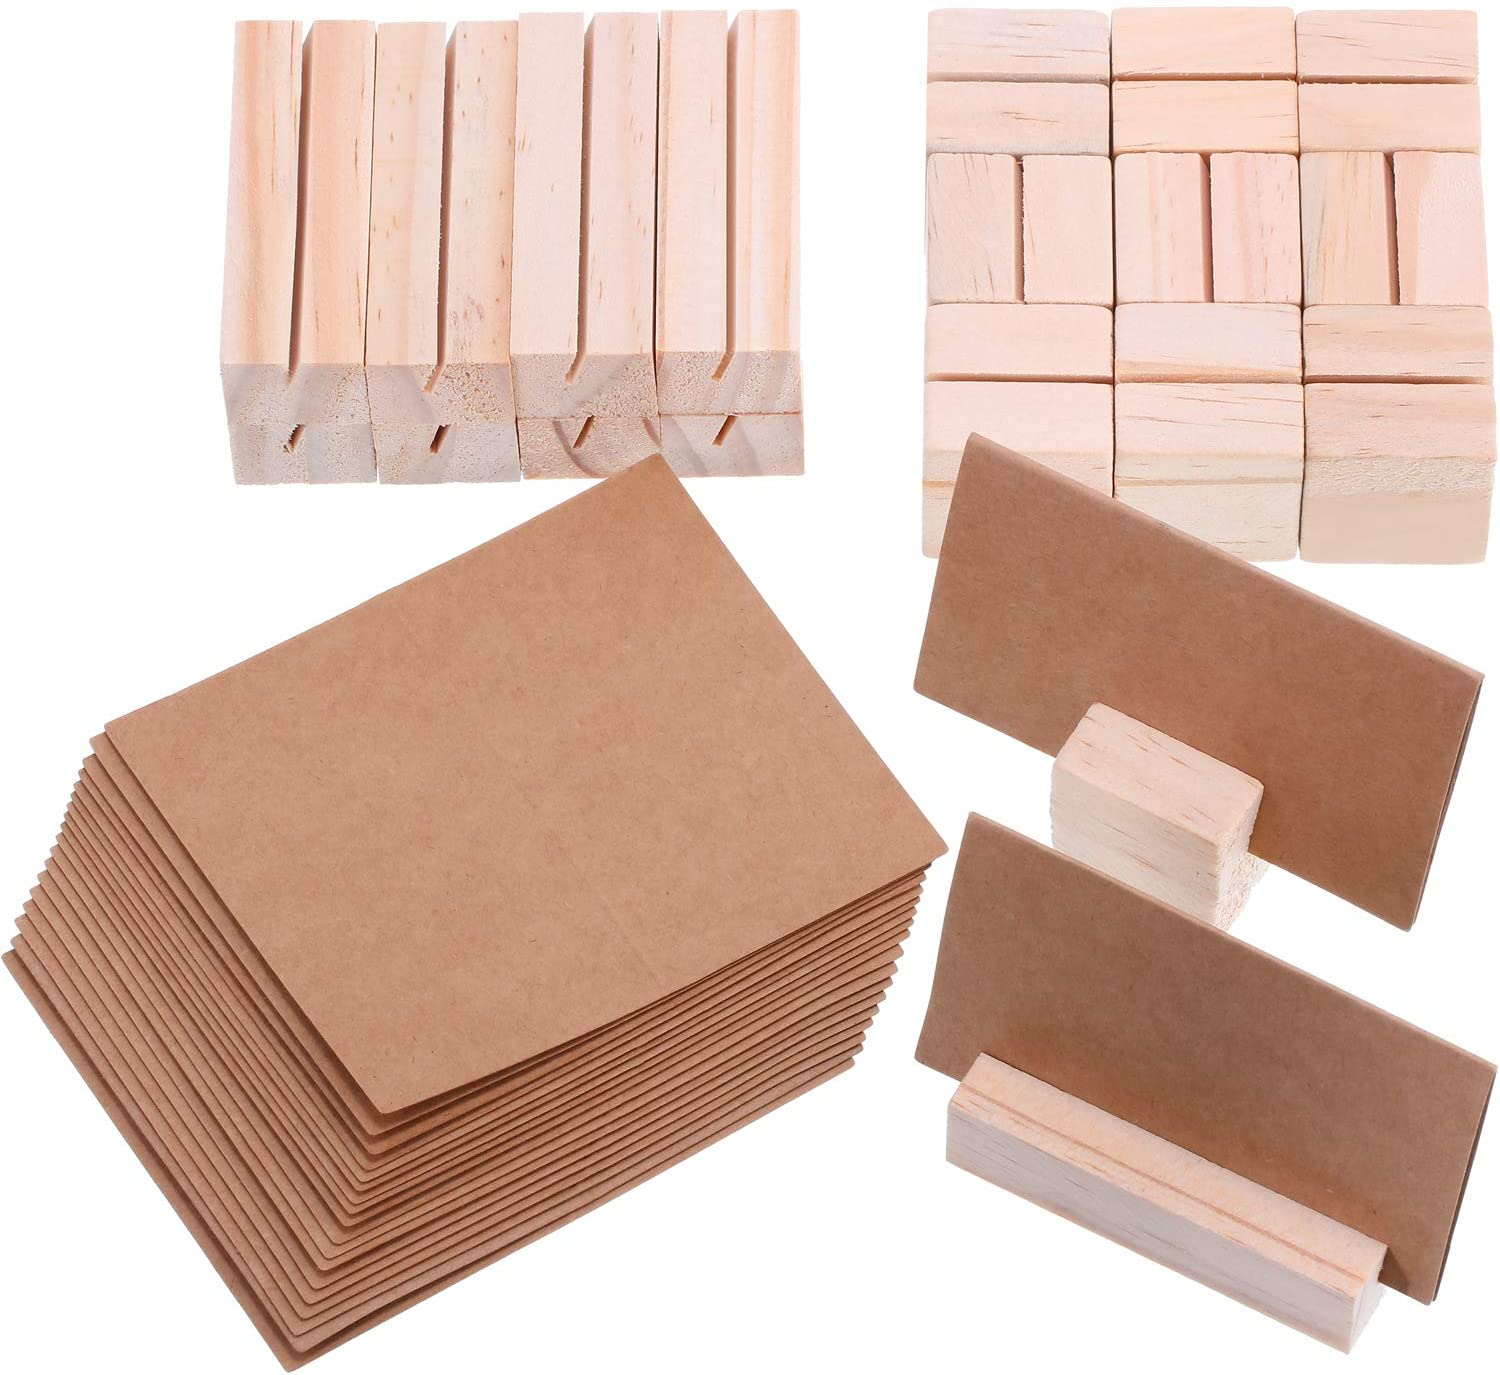 Boao 20 Pieces Wood Place Card Holders Wooden Table Number Holder Memo Stand with 20 Pieces Kraft-Paper Tent Seating Card for Wedding Dinner Party Decoration